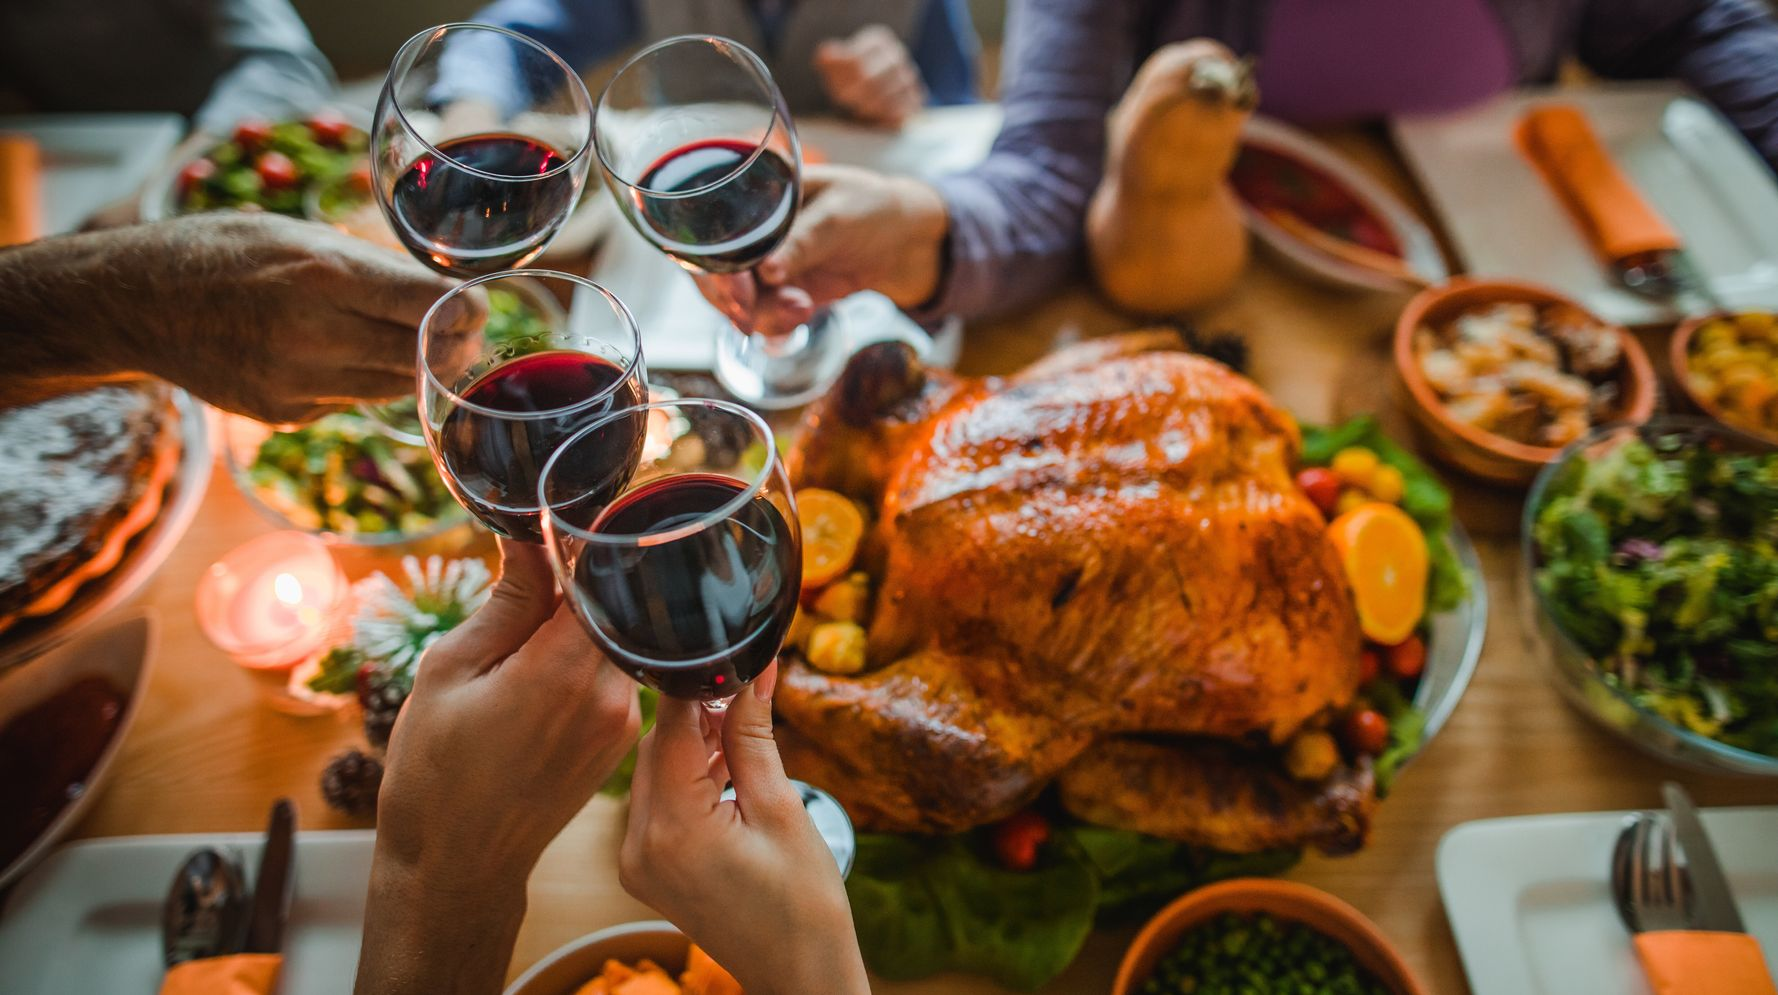 How To Politely Decline An Invitation To A Holiday Dinner